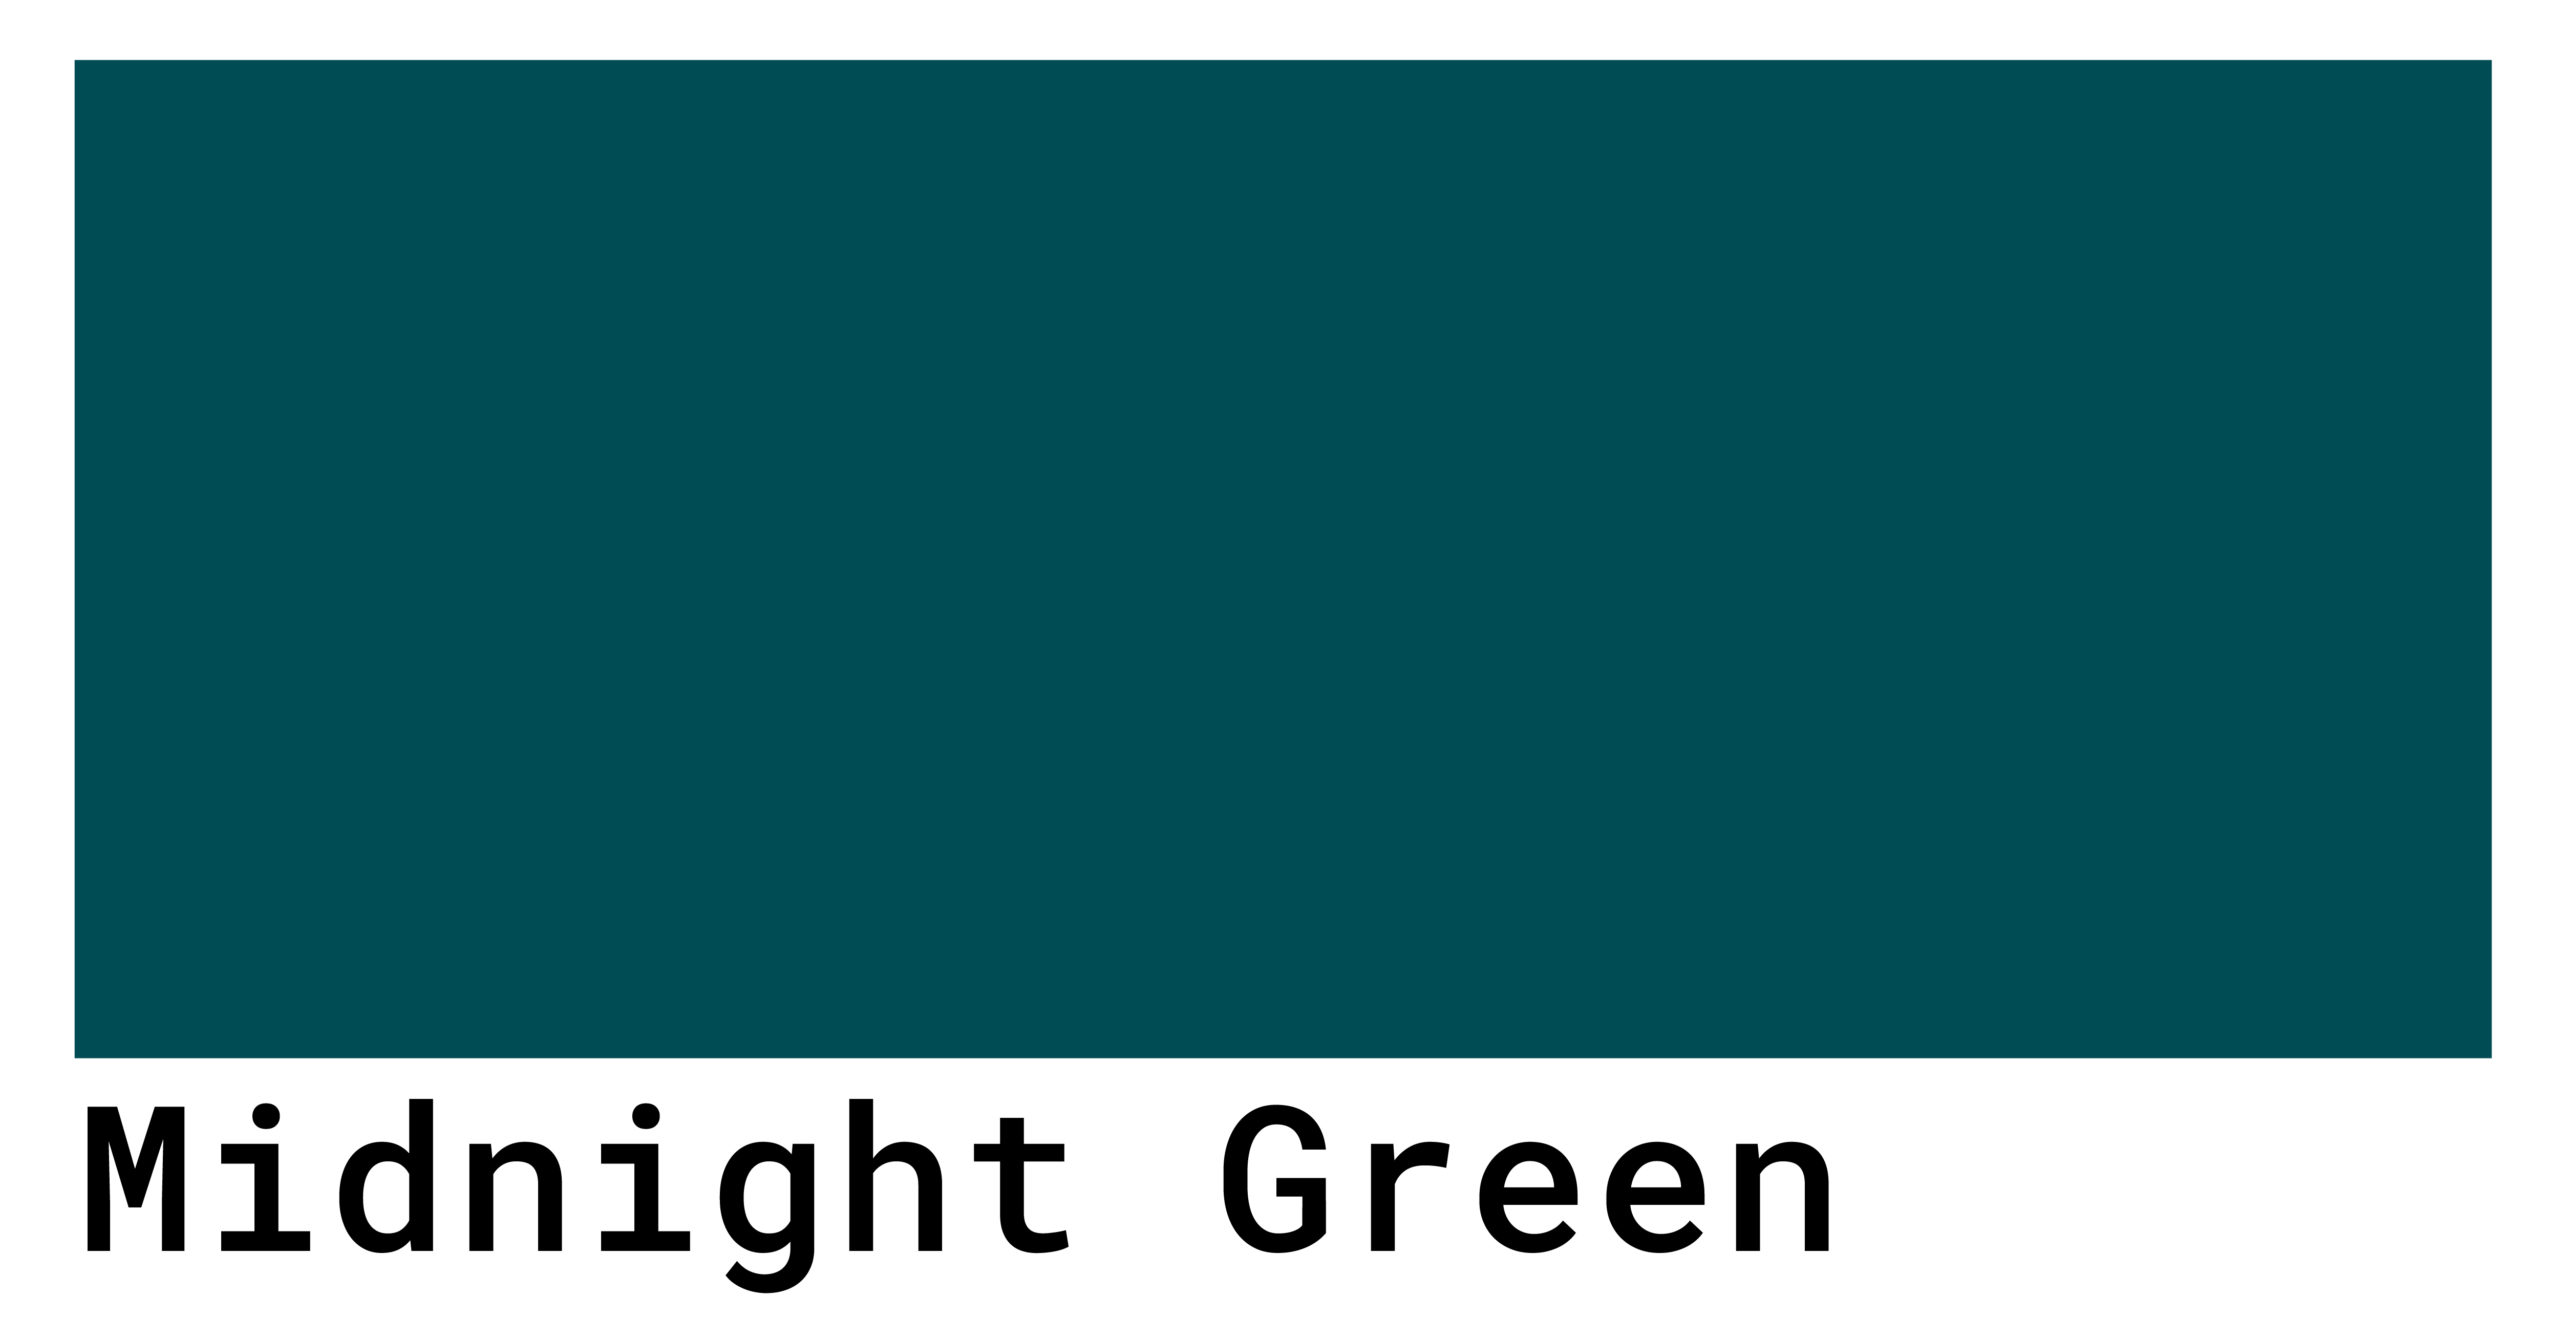 midnight green color code